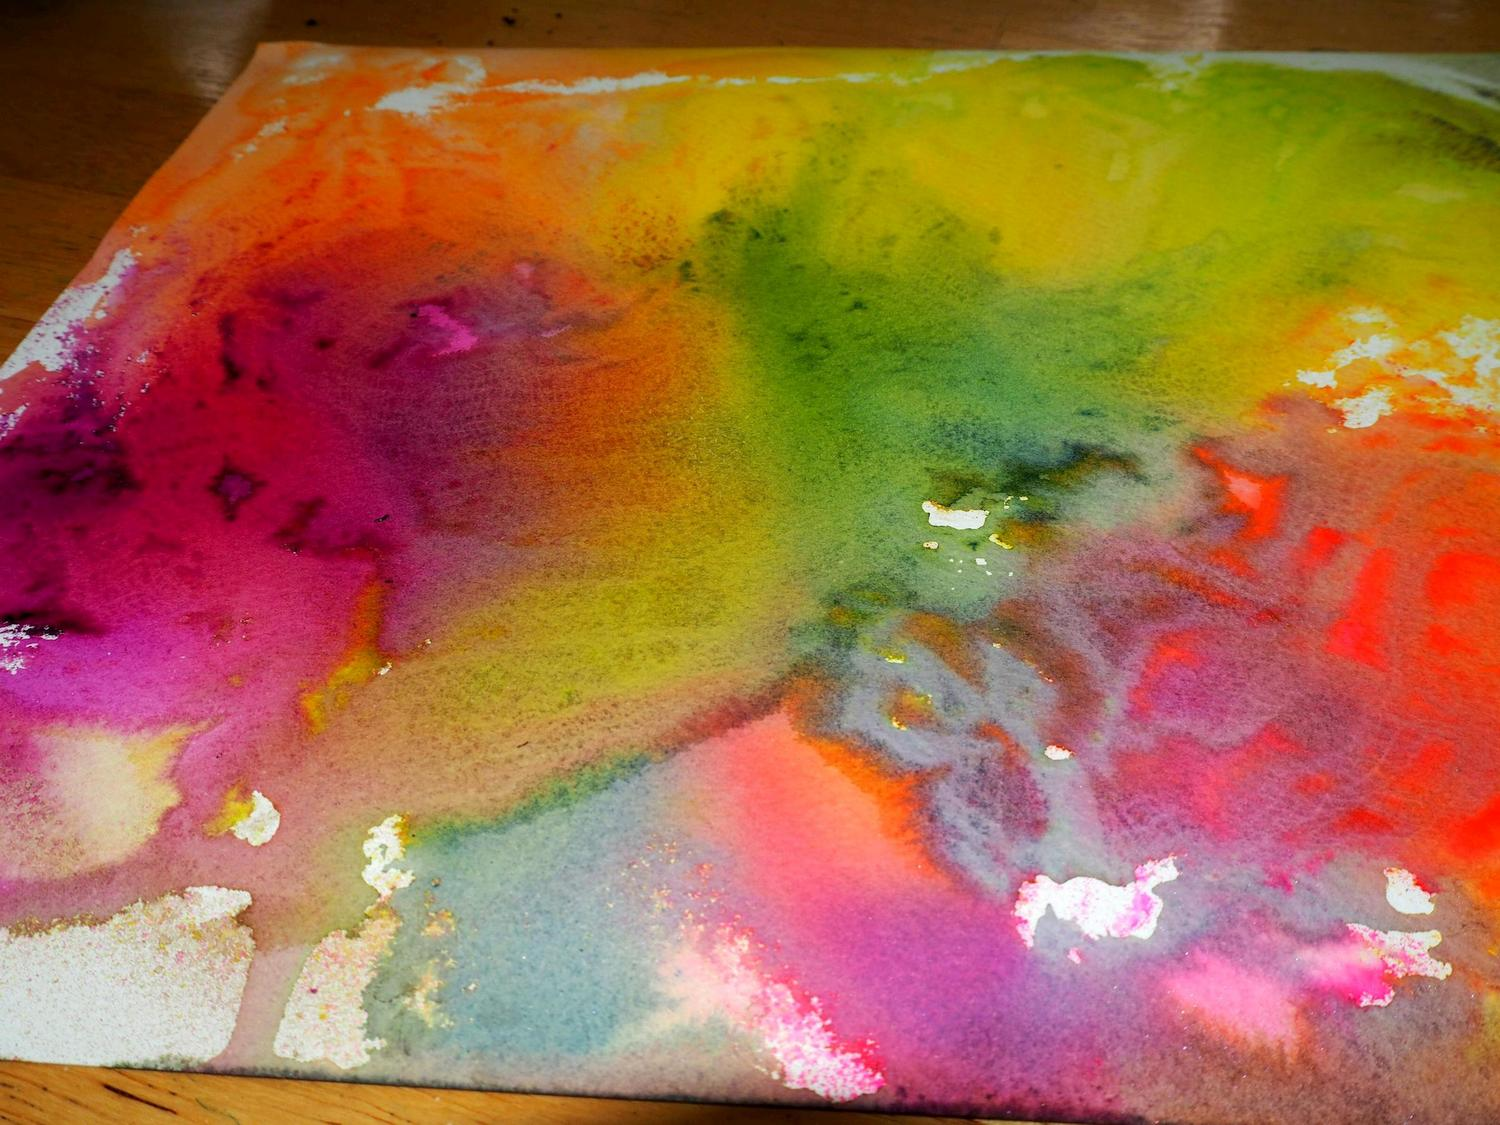 The leftover dyes on the watercolor paper I sprayed on top of.